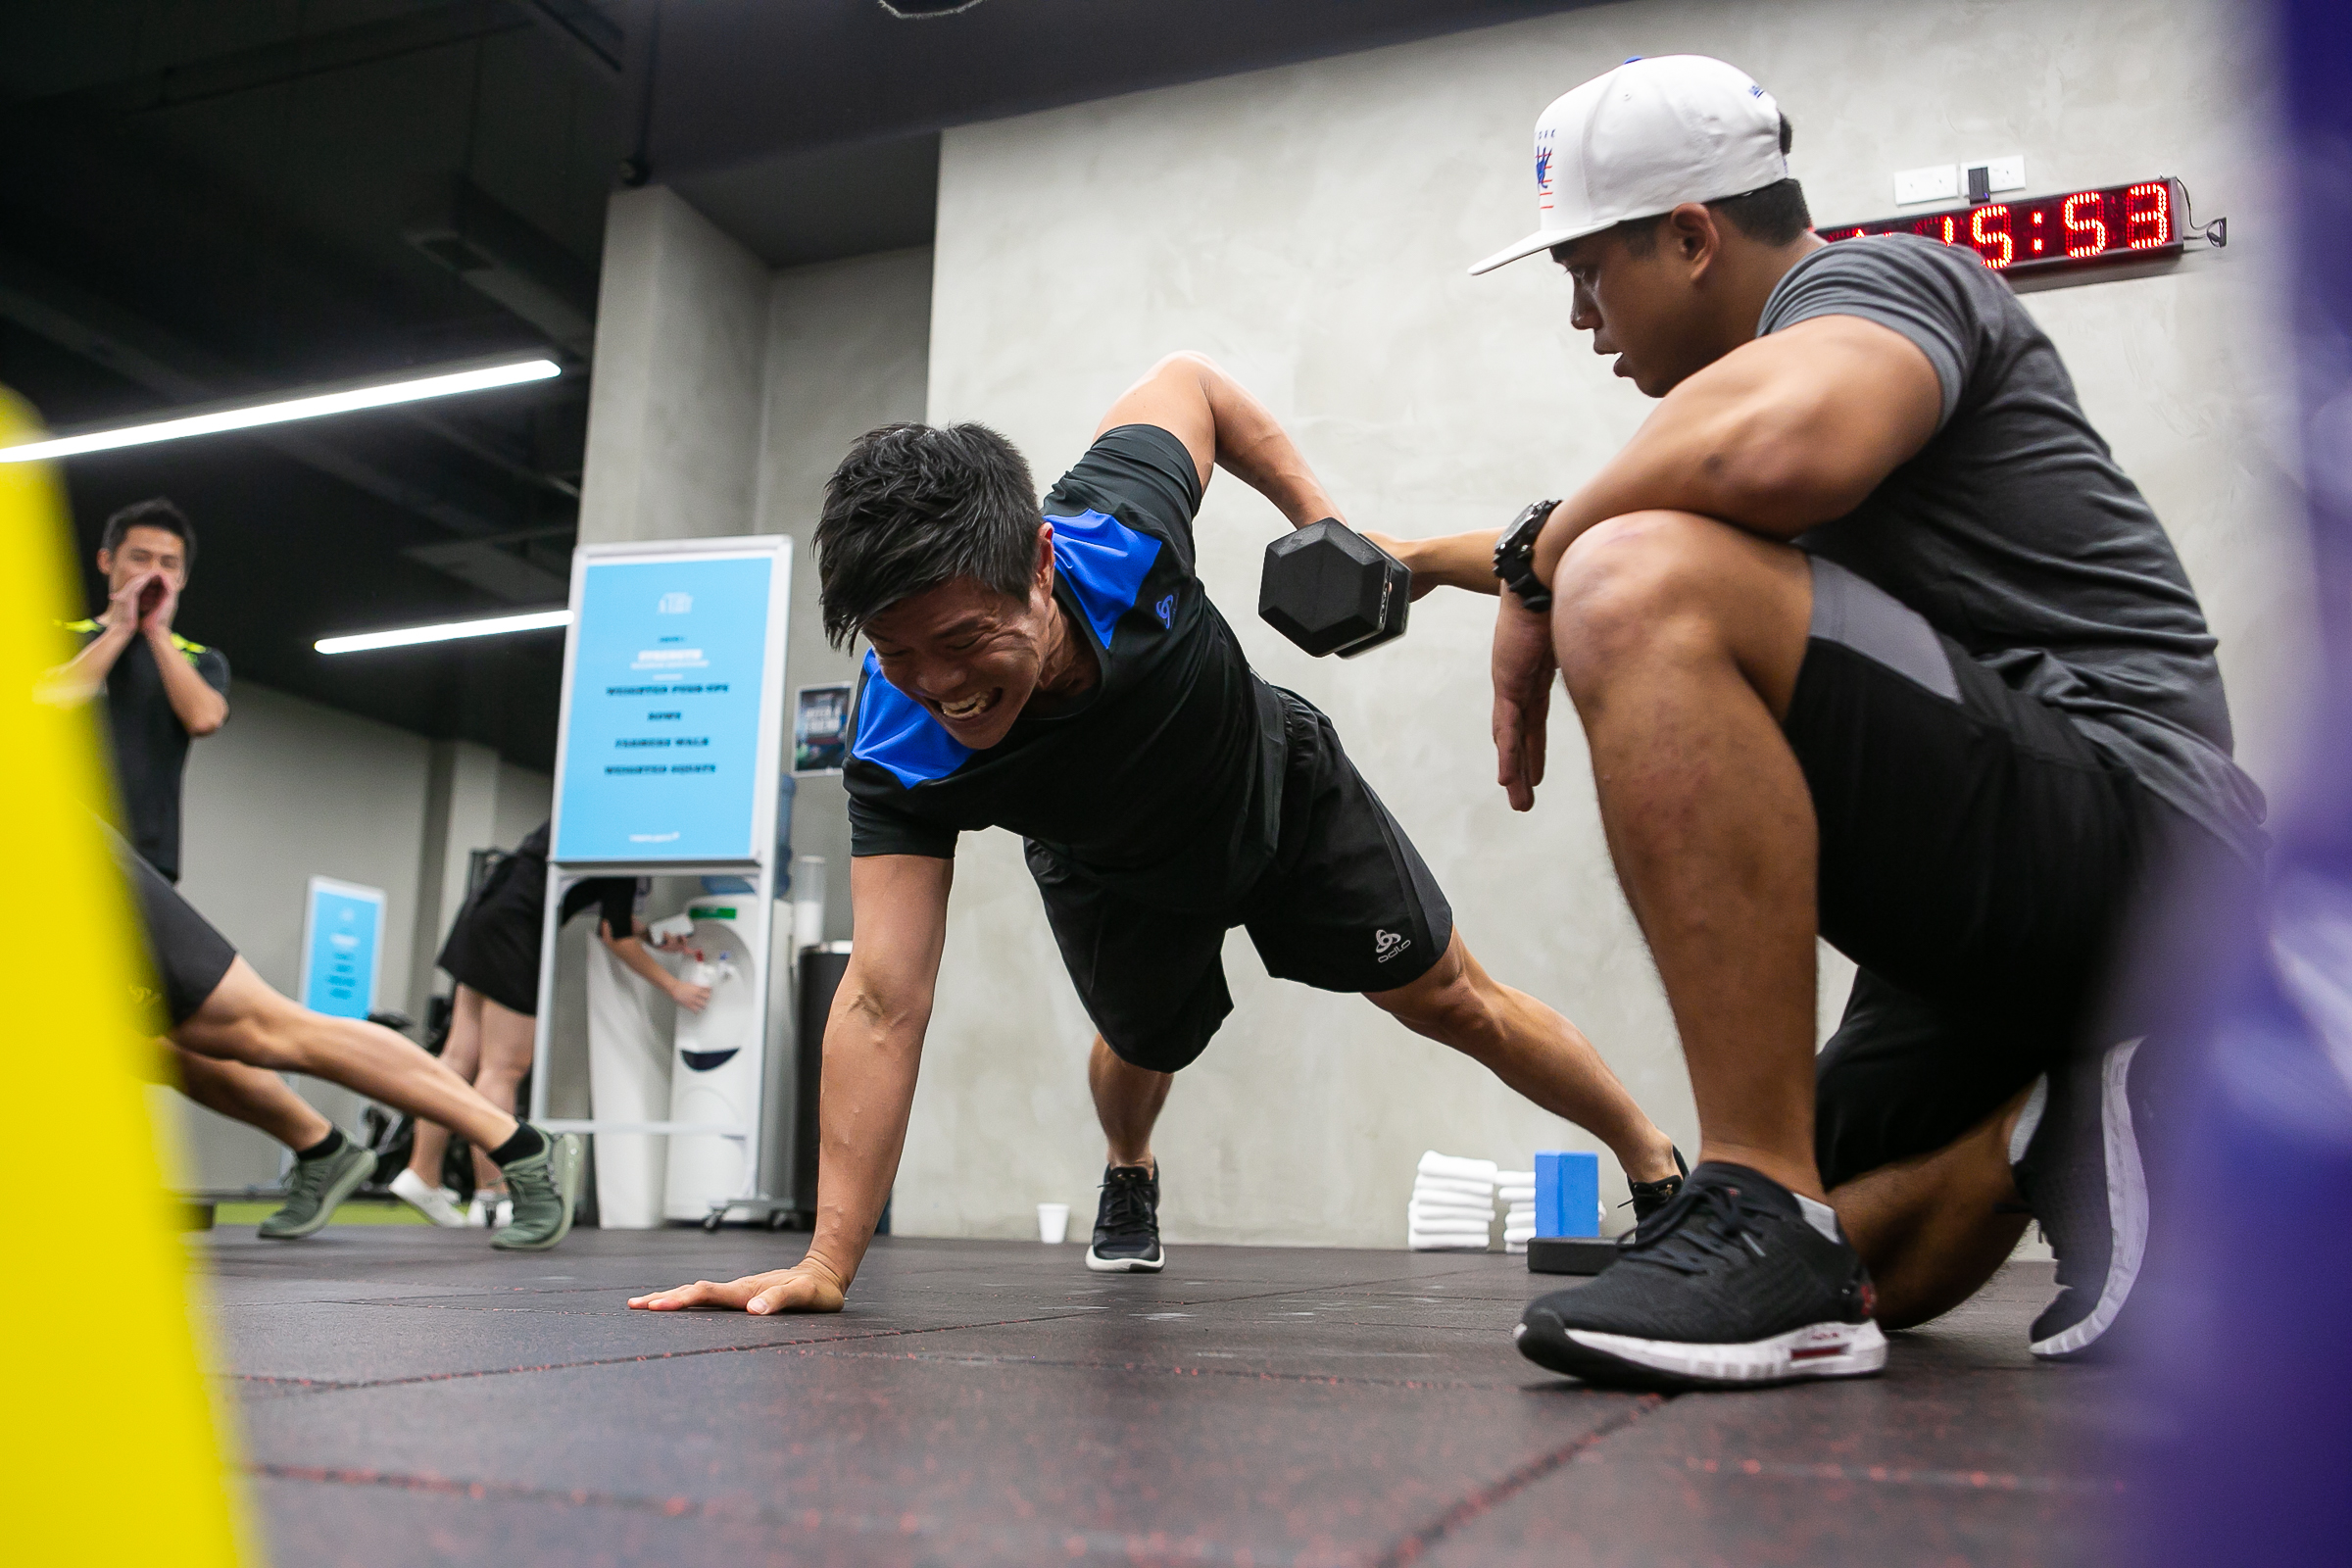 One of the A-Listers, Goh Yong Yau, pushing himself to the limit during The Physical Push with TripleFit